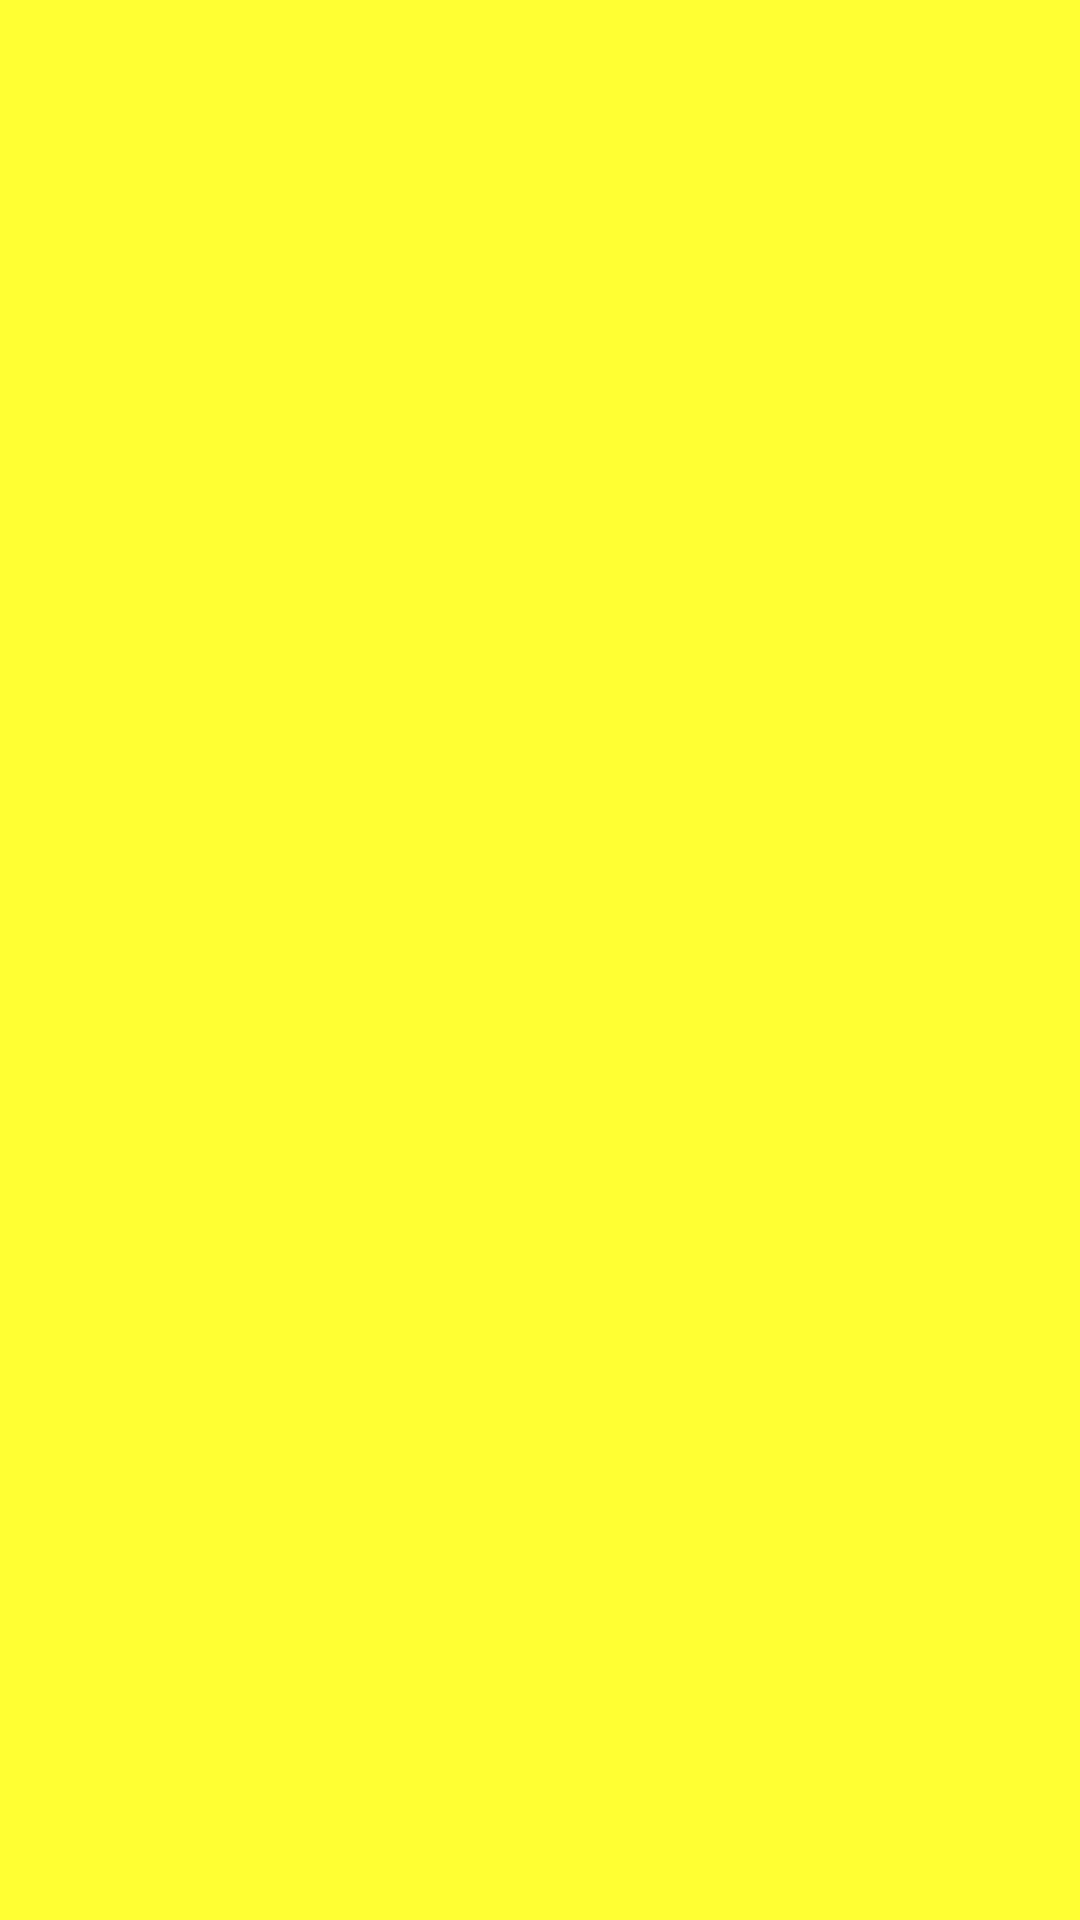 1080x1920 Electric Yellow Solid Color Background